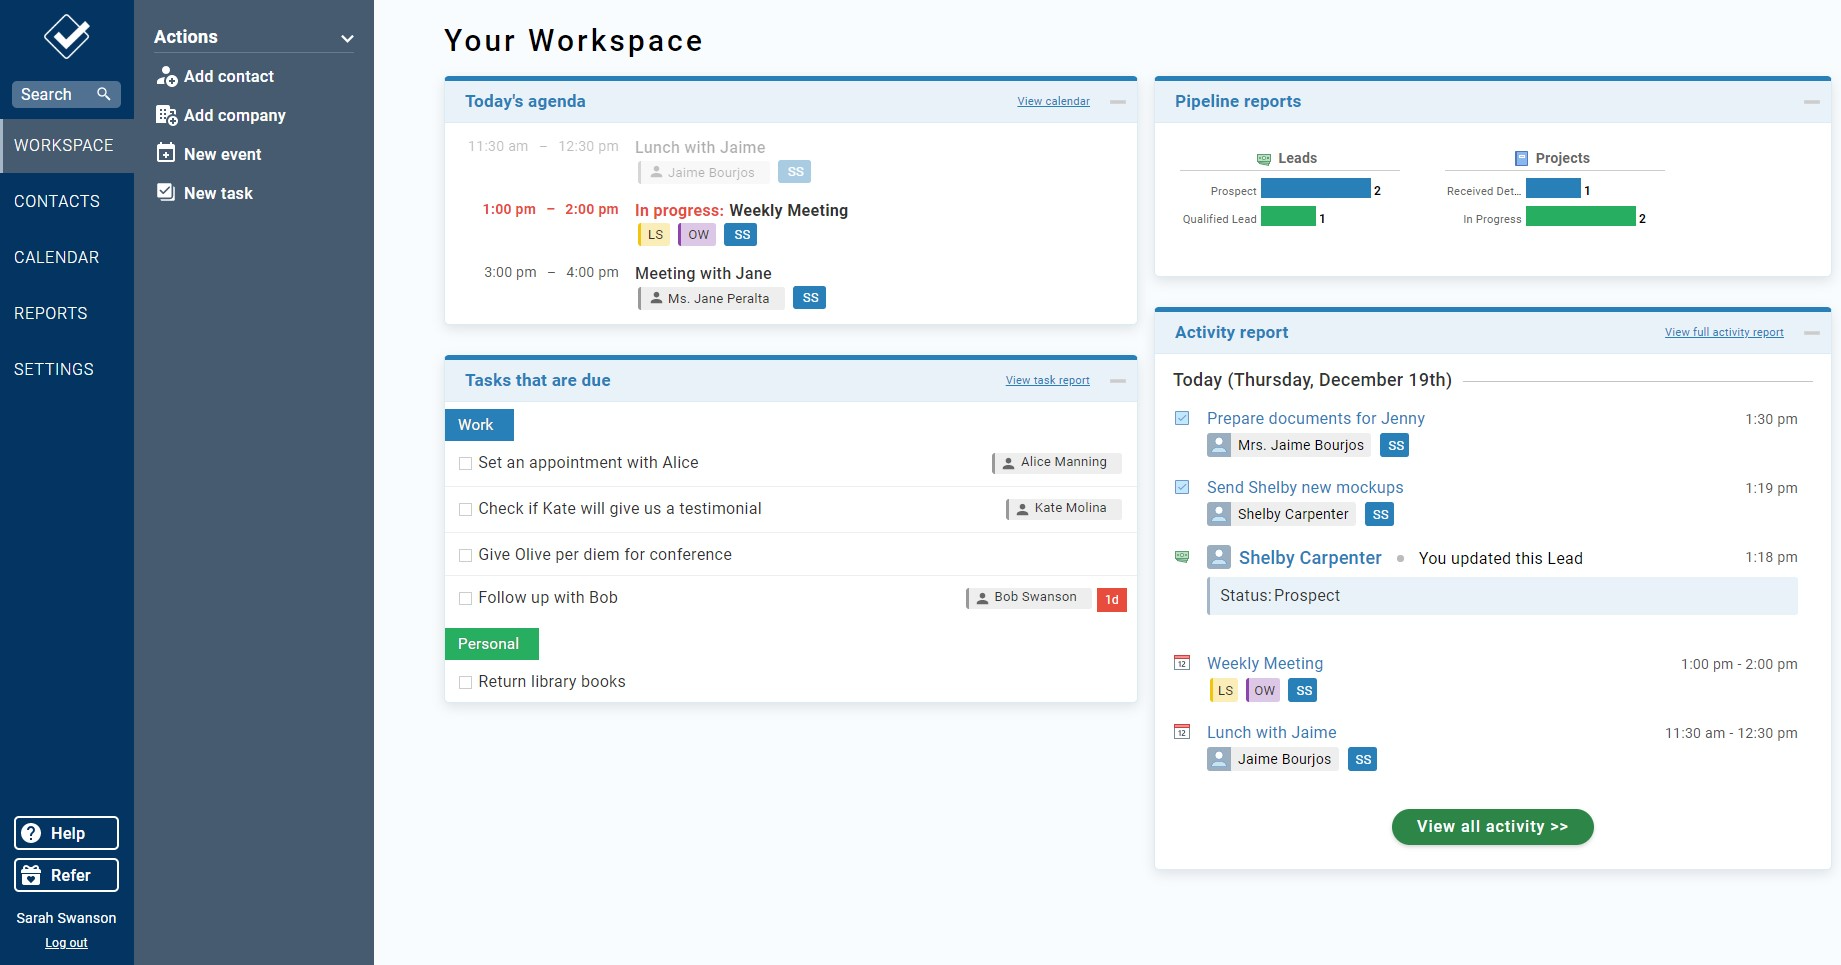 Your Workspace is your homepage for your CRM. It gives you a quick overview of everything that's going on.